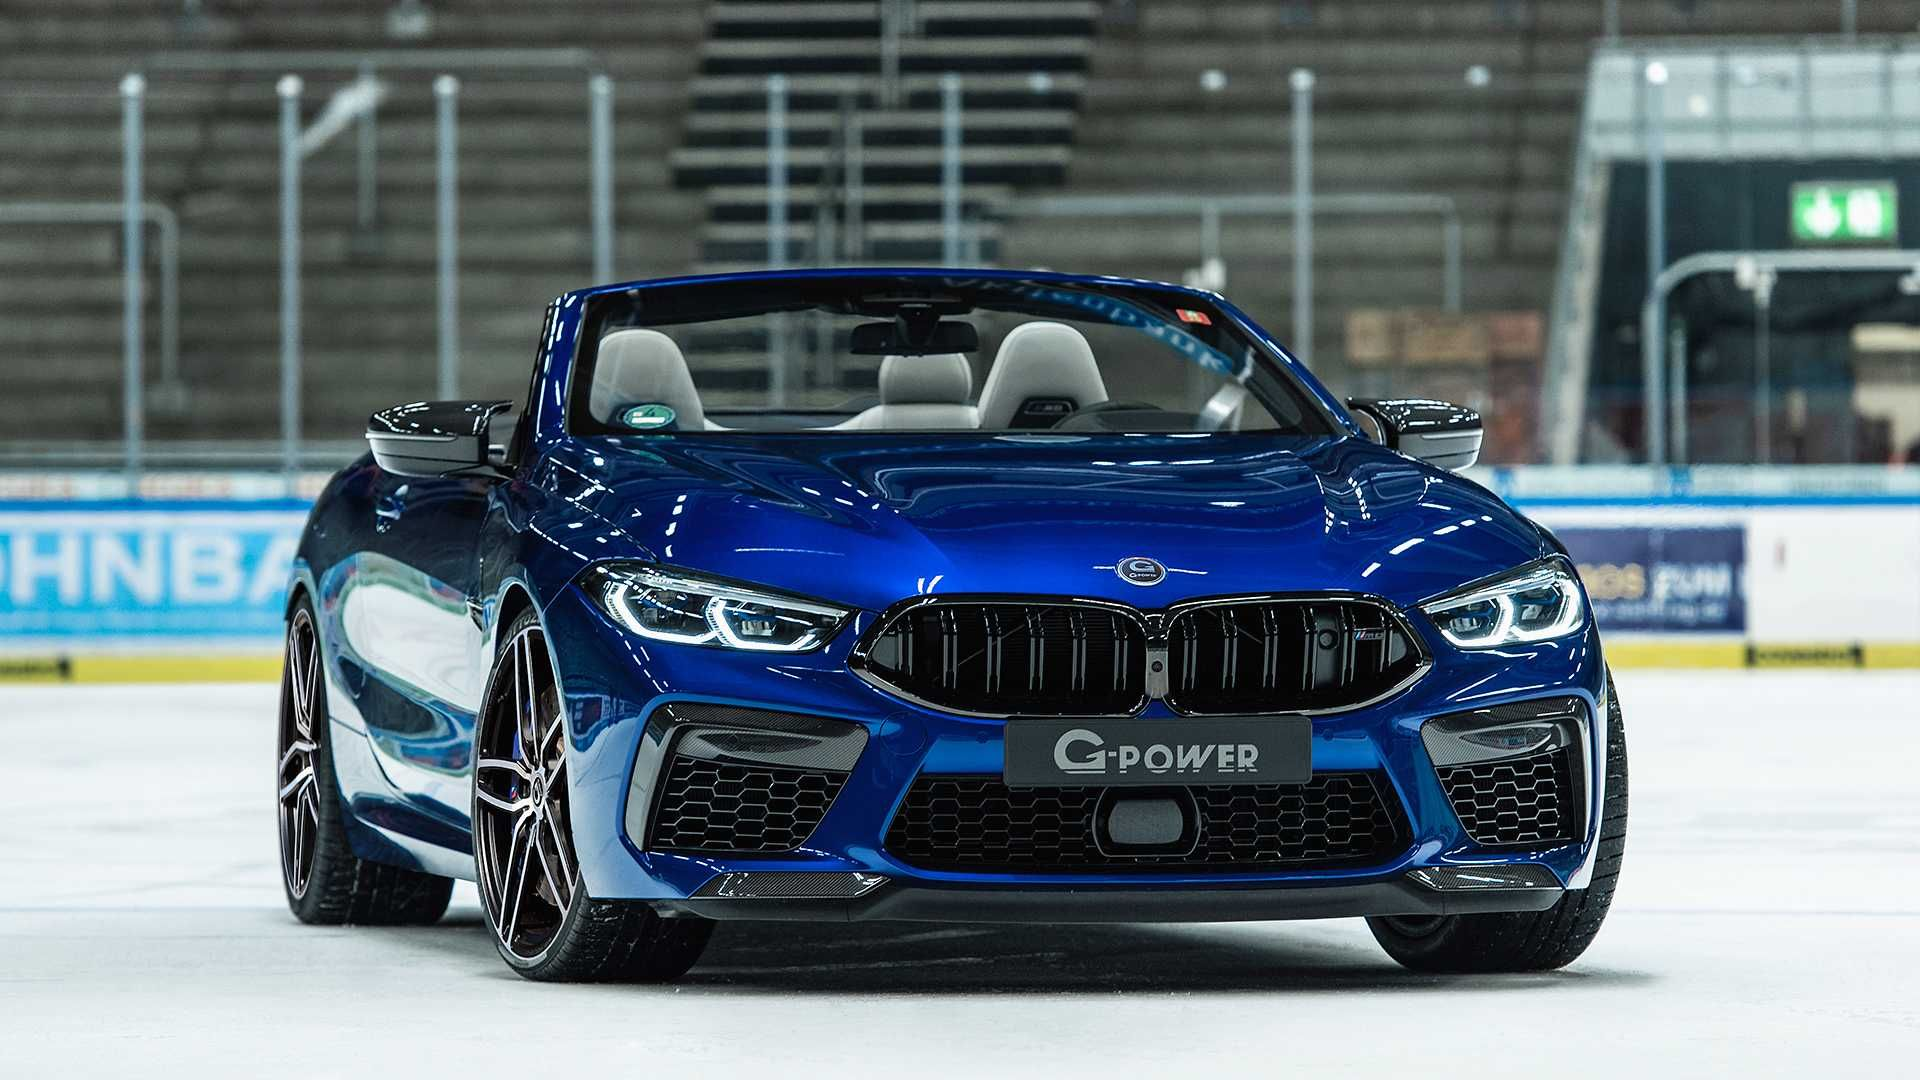 G Power G8m Bi Turbo Takes Bmw M8 Competition To 808 Hp 603 Kw In 2020 Bmw Bmw Models New Bmw